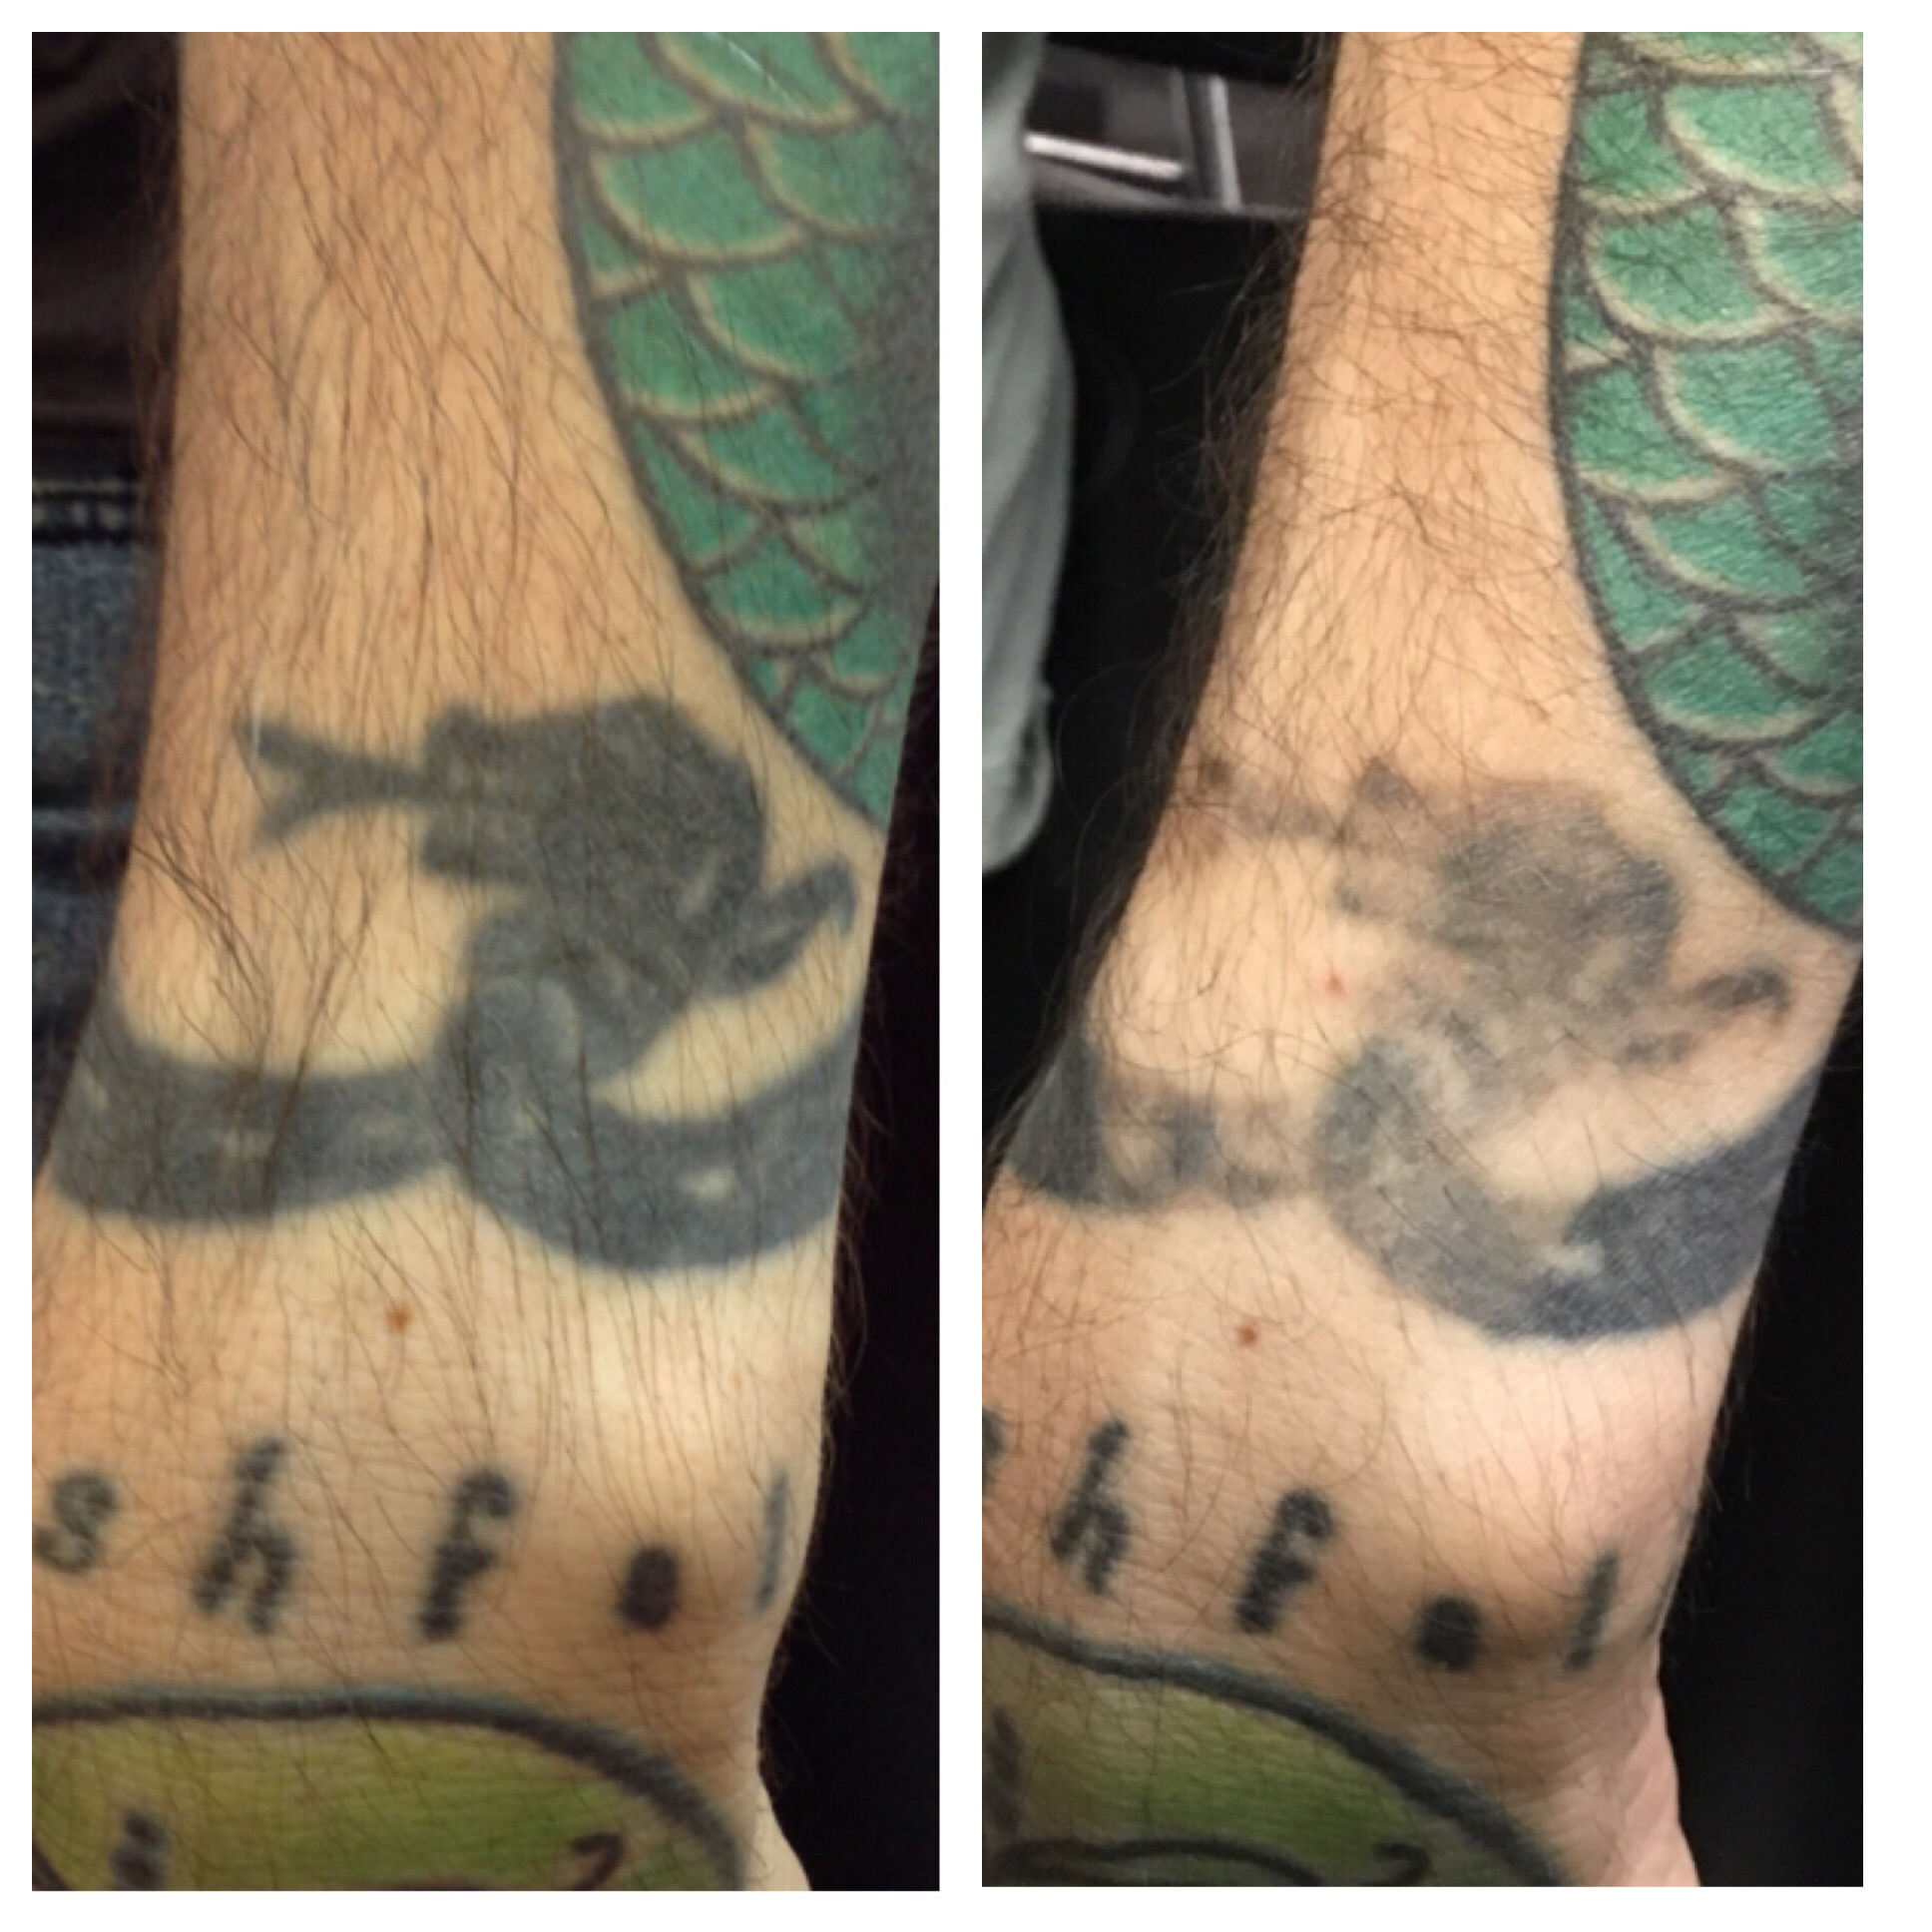 Tattoo Removal Before And After Photos At Disappearing Inc